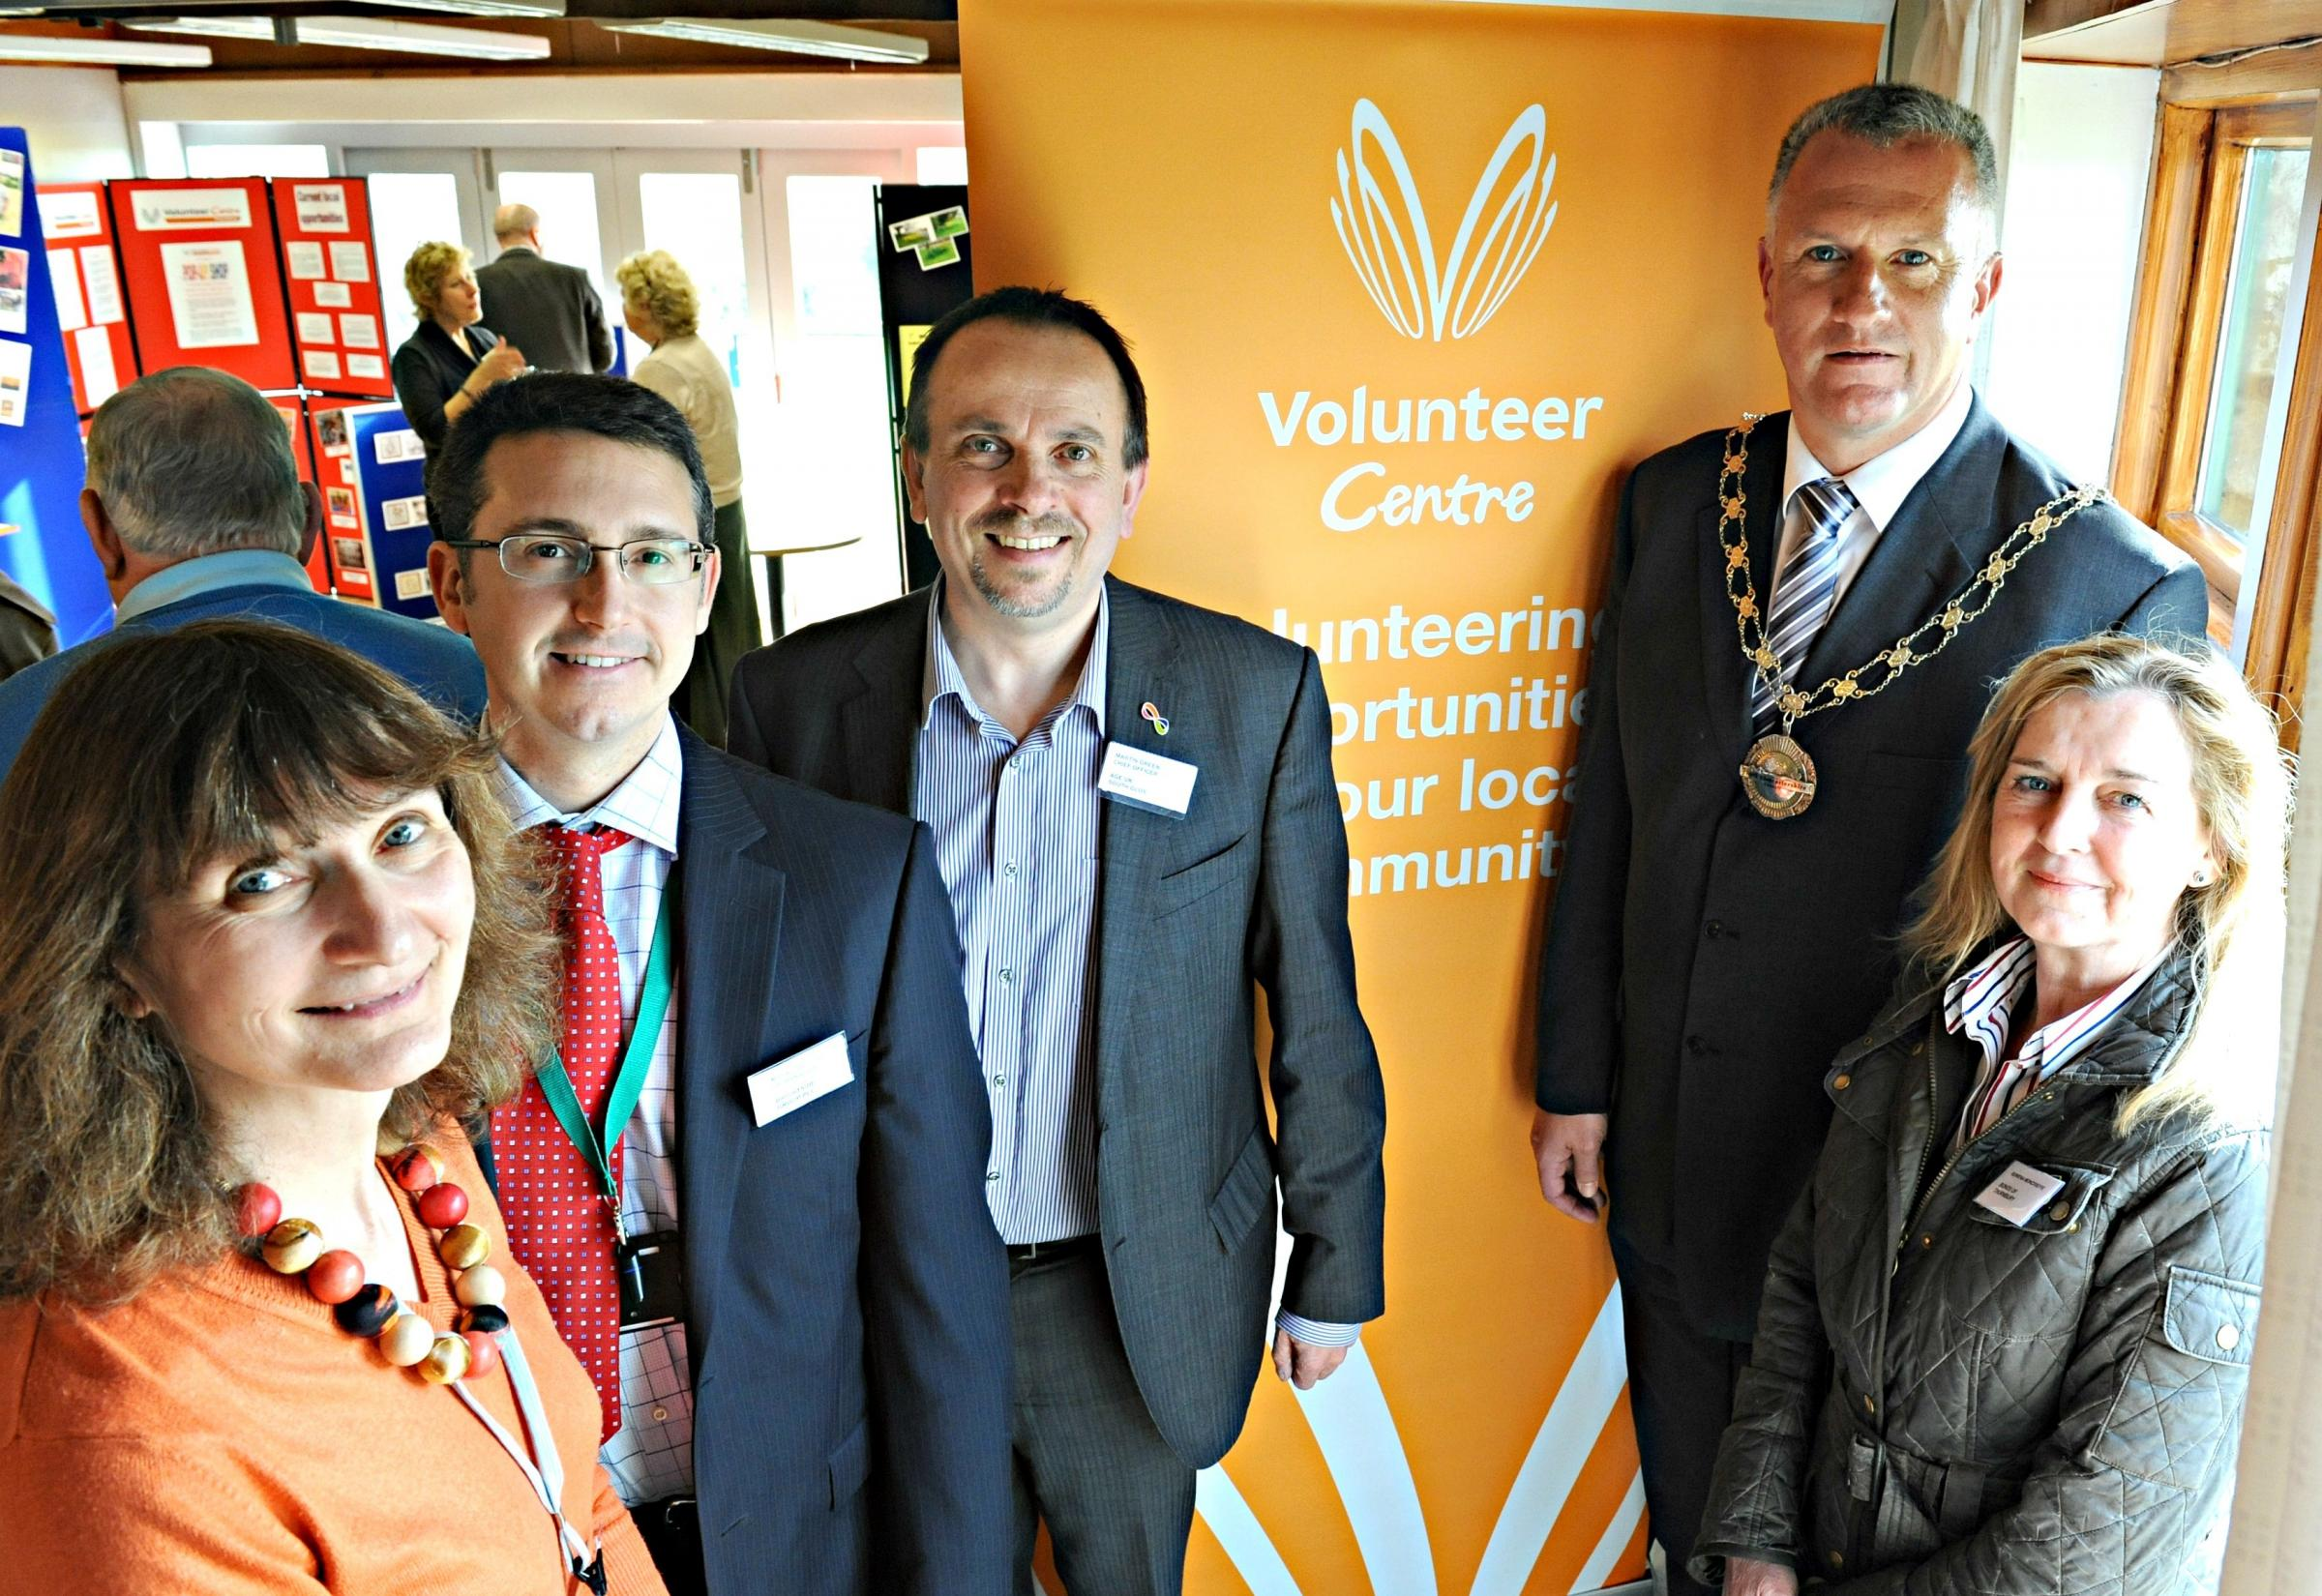 Kim Webb of Thornbury Volunteer Centre, Mark Gregory of Brightside Group, Mark Green of Age UK South Gloucestershire, Cllr Ian Boulton, Chairman of South Gloucestershire Council and Rowena Moncrieffe of Bonds of Thornbury at the Business and Voluntary Se